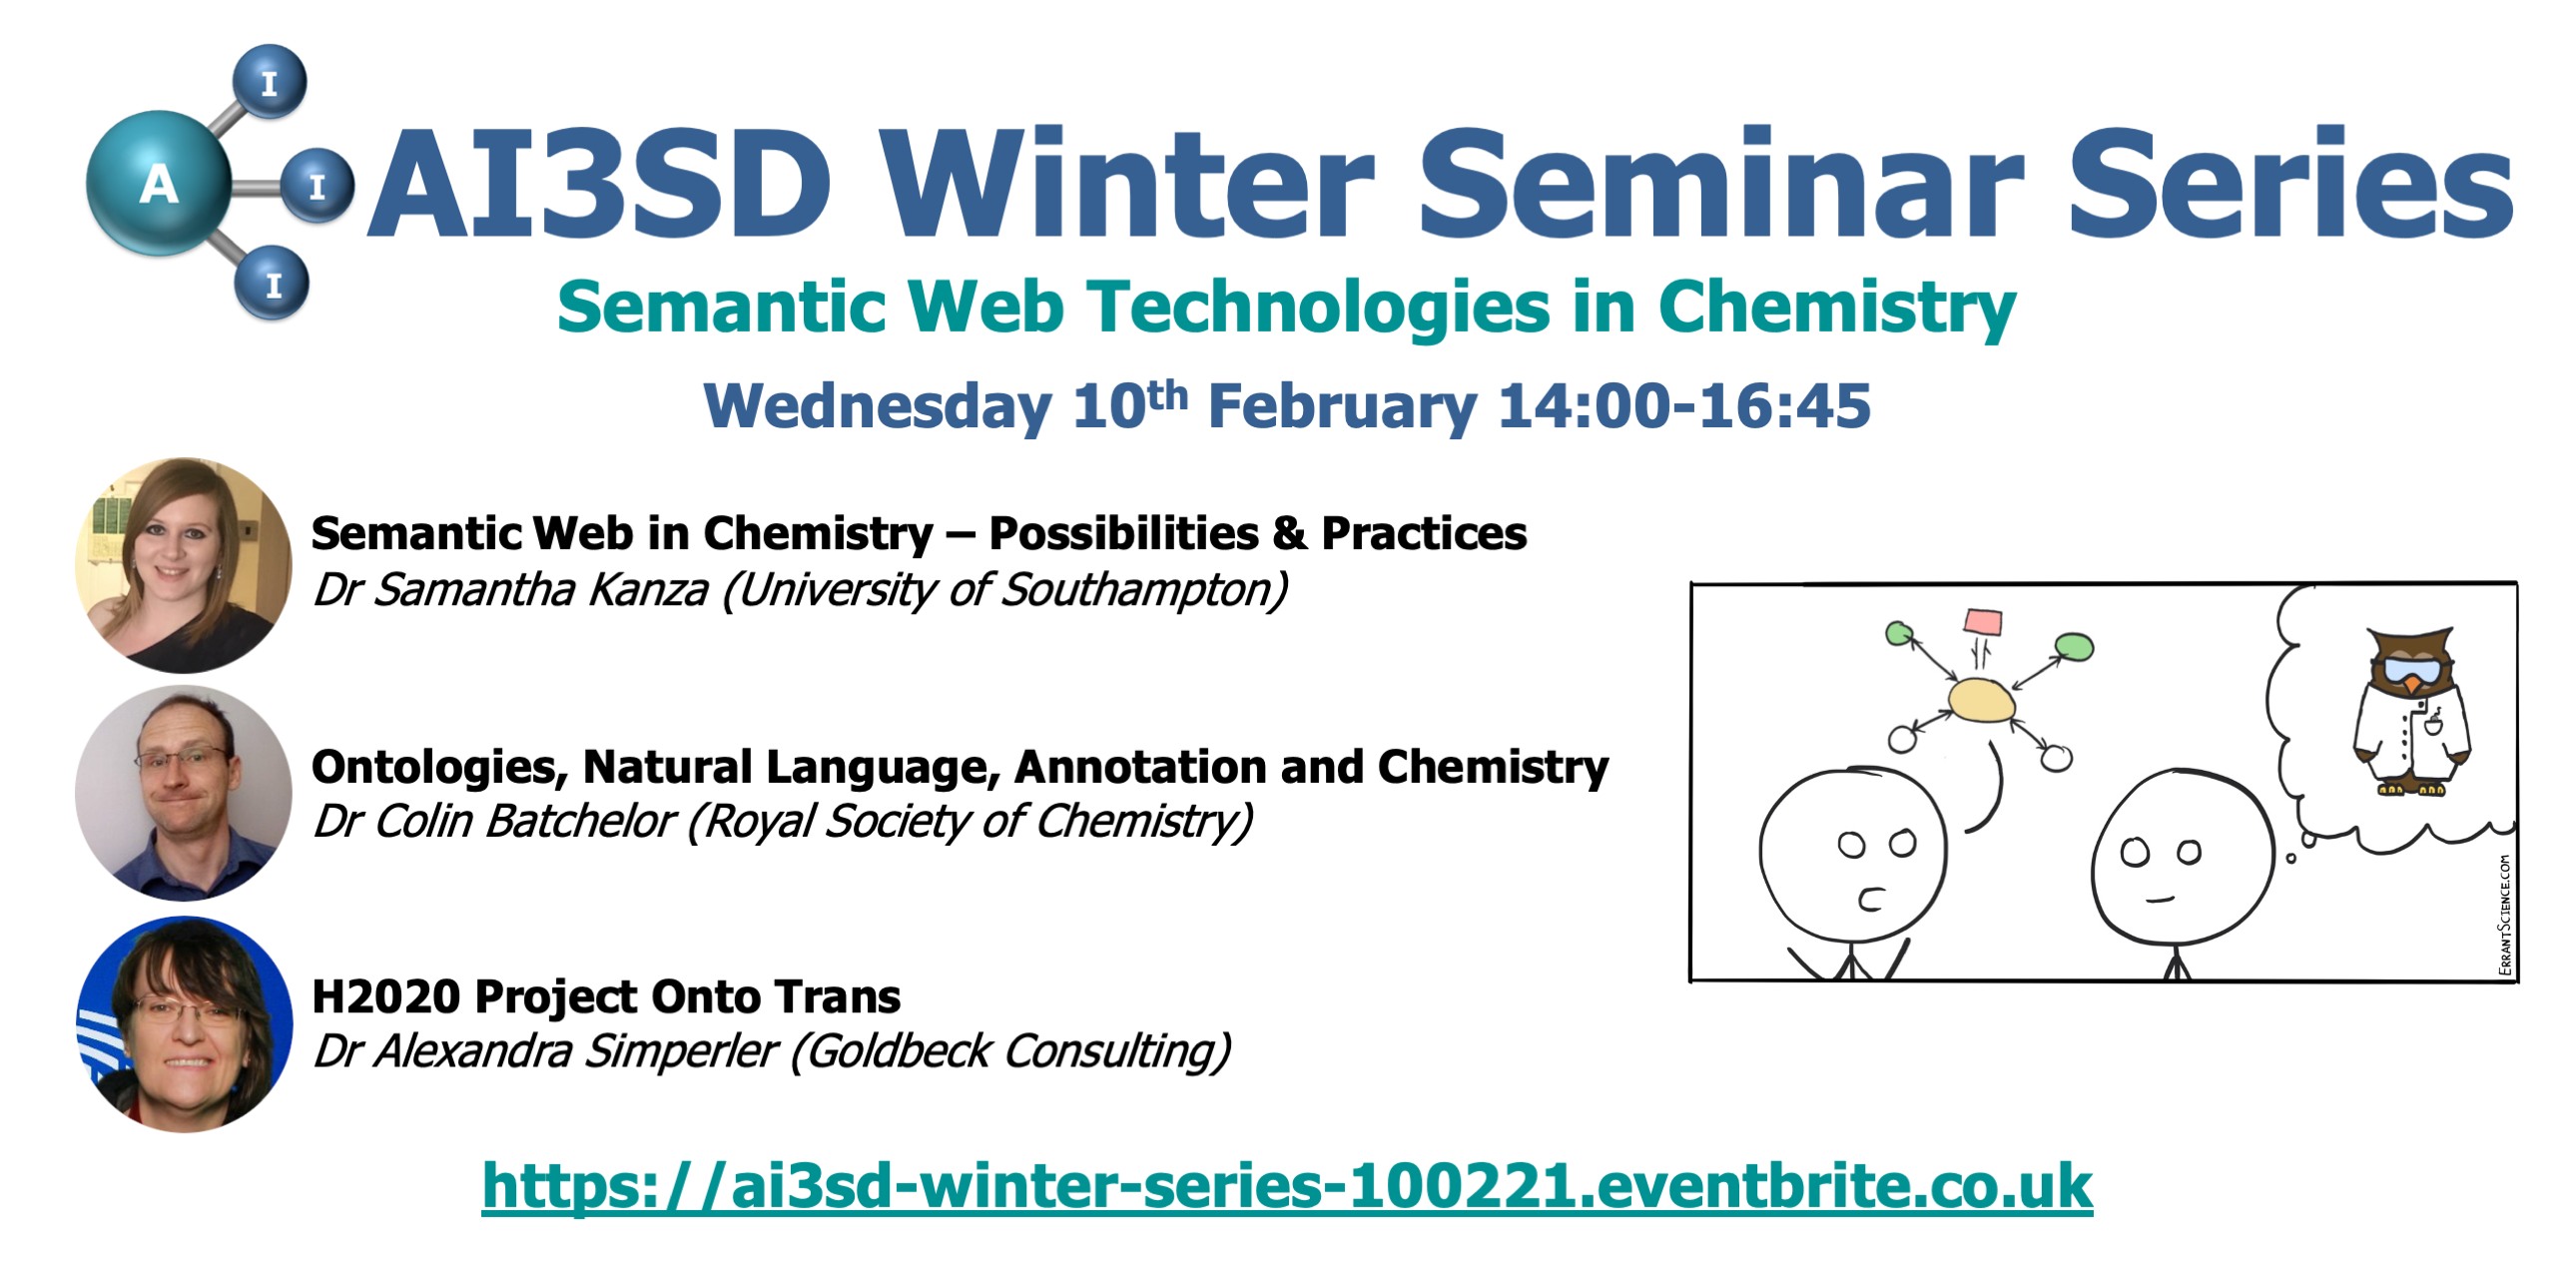 10/02/2020 – AI3SD Winter Seminar Series: Semantic Web Technologies in Chemistry